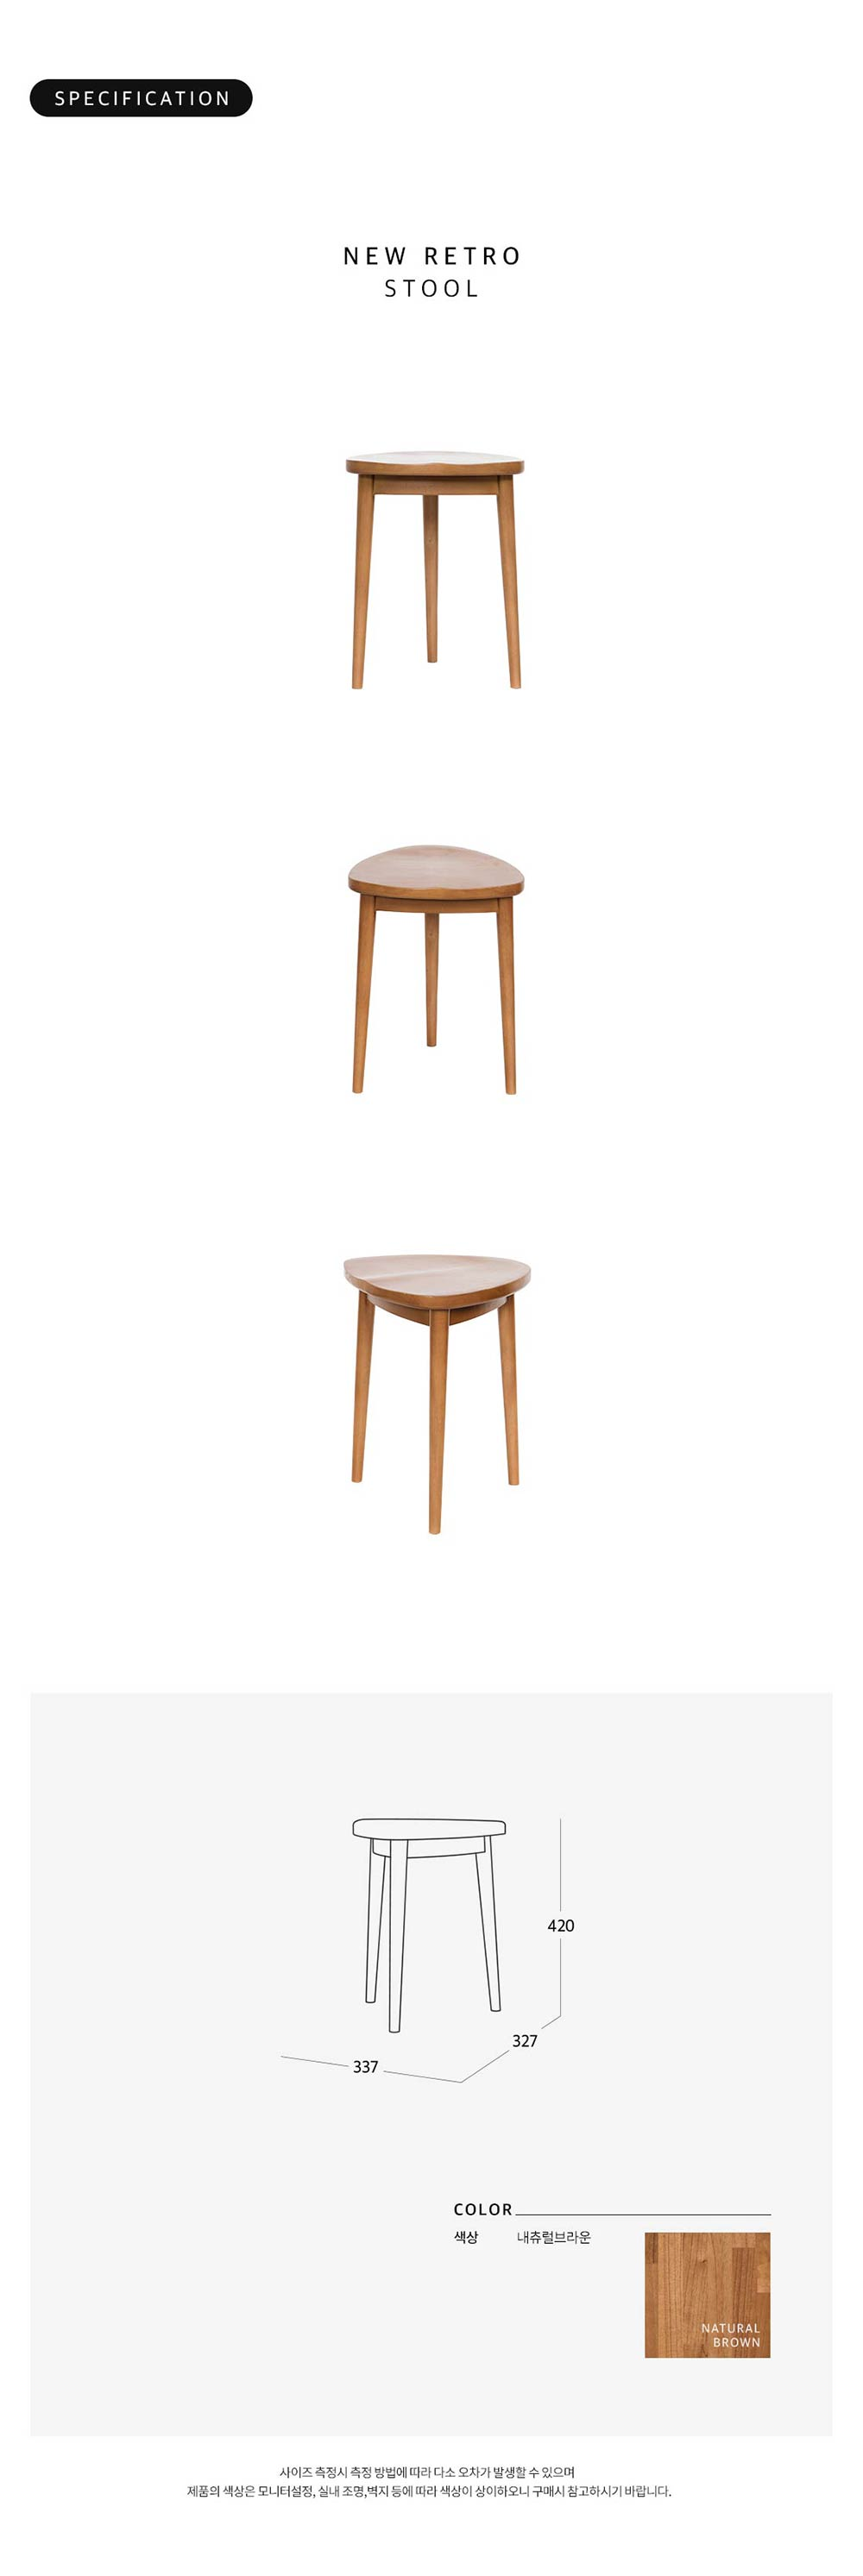 New_Retro_Stool_Furniture_Online_Singapore_Specification_by_born_in_colour